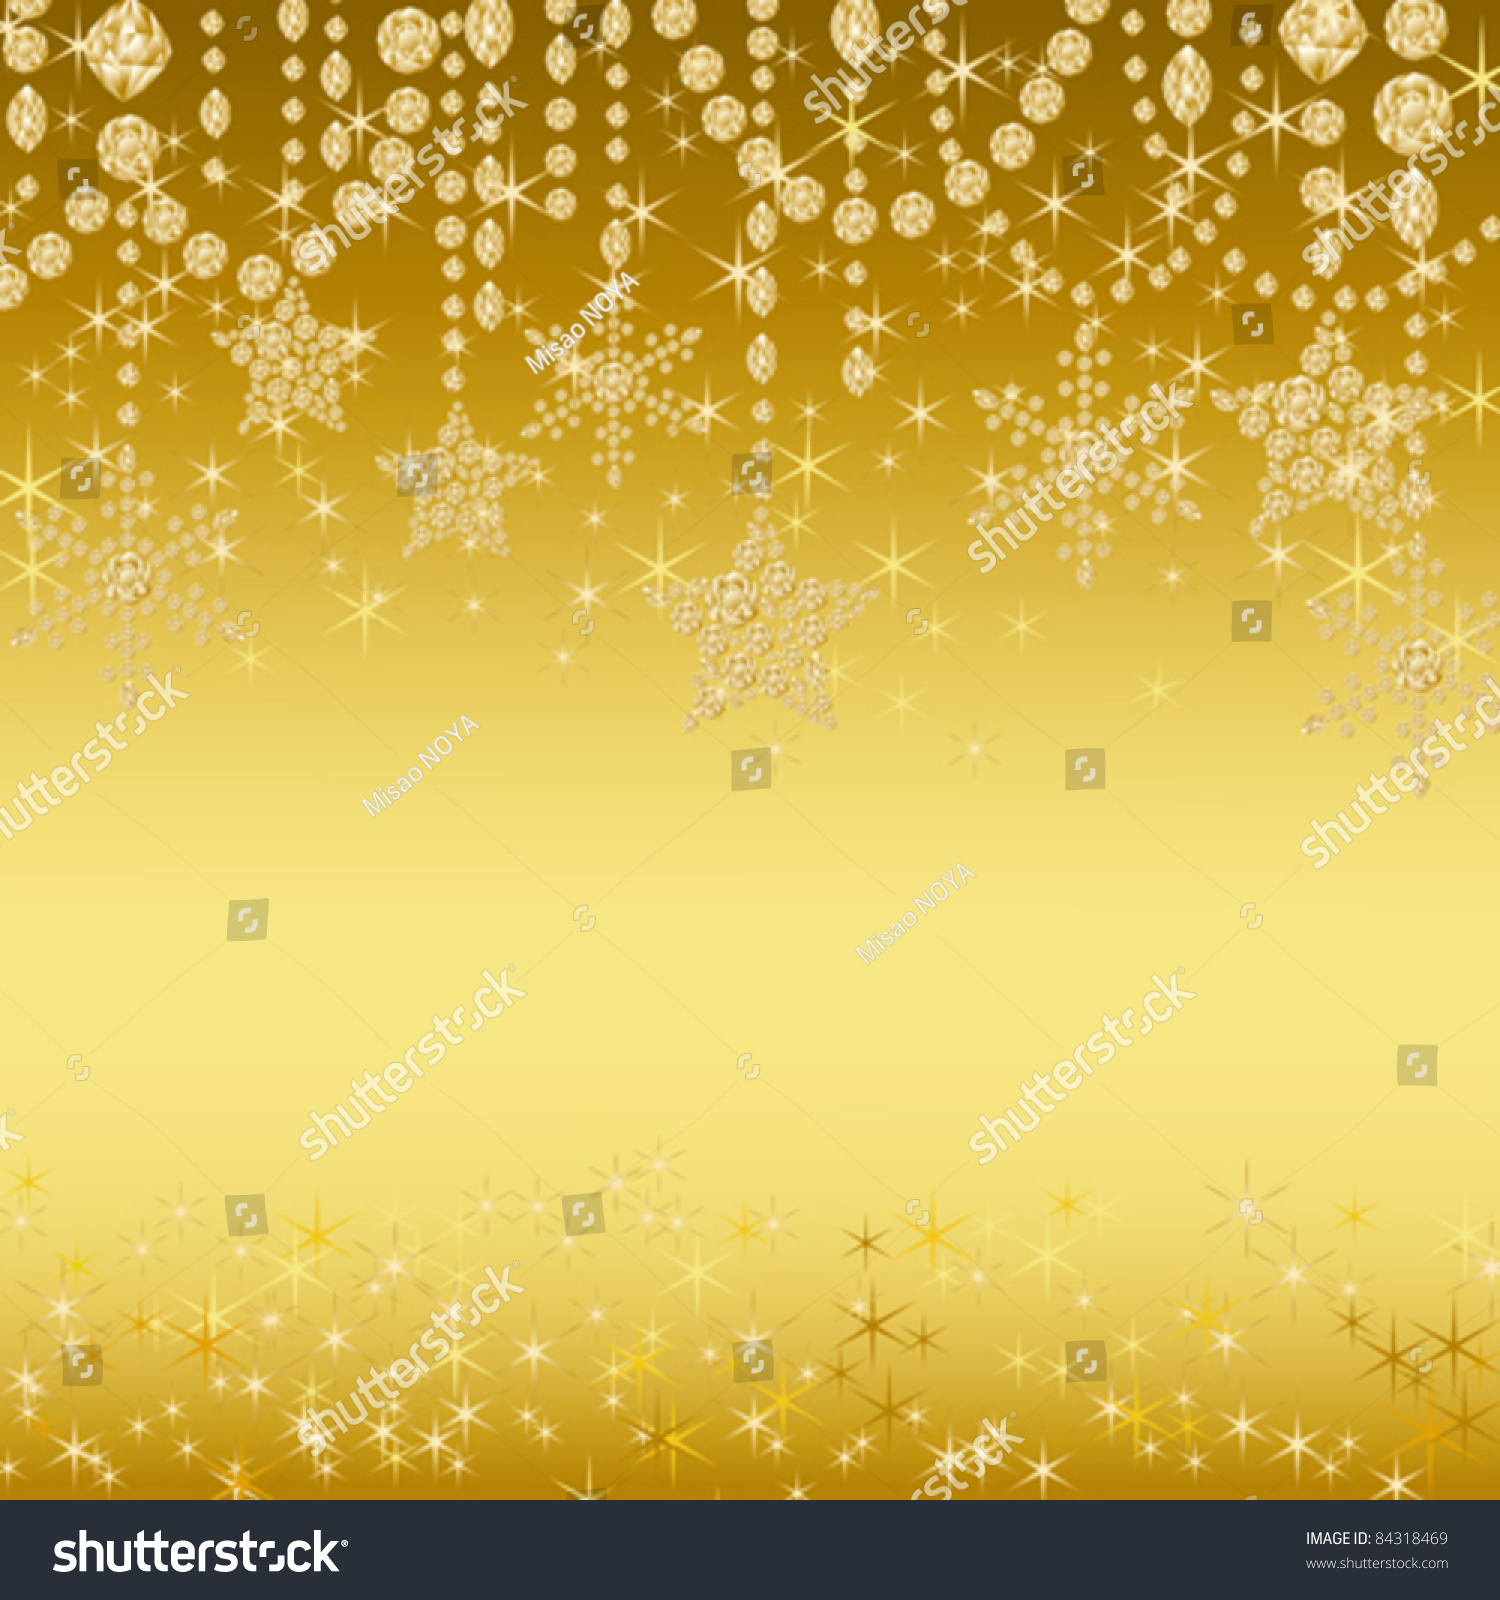 Jewelry Decoration Background Stock Vector Illustration 84318469 ...